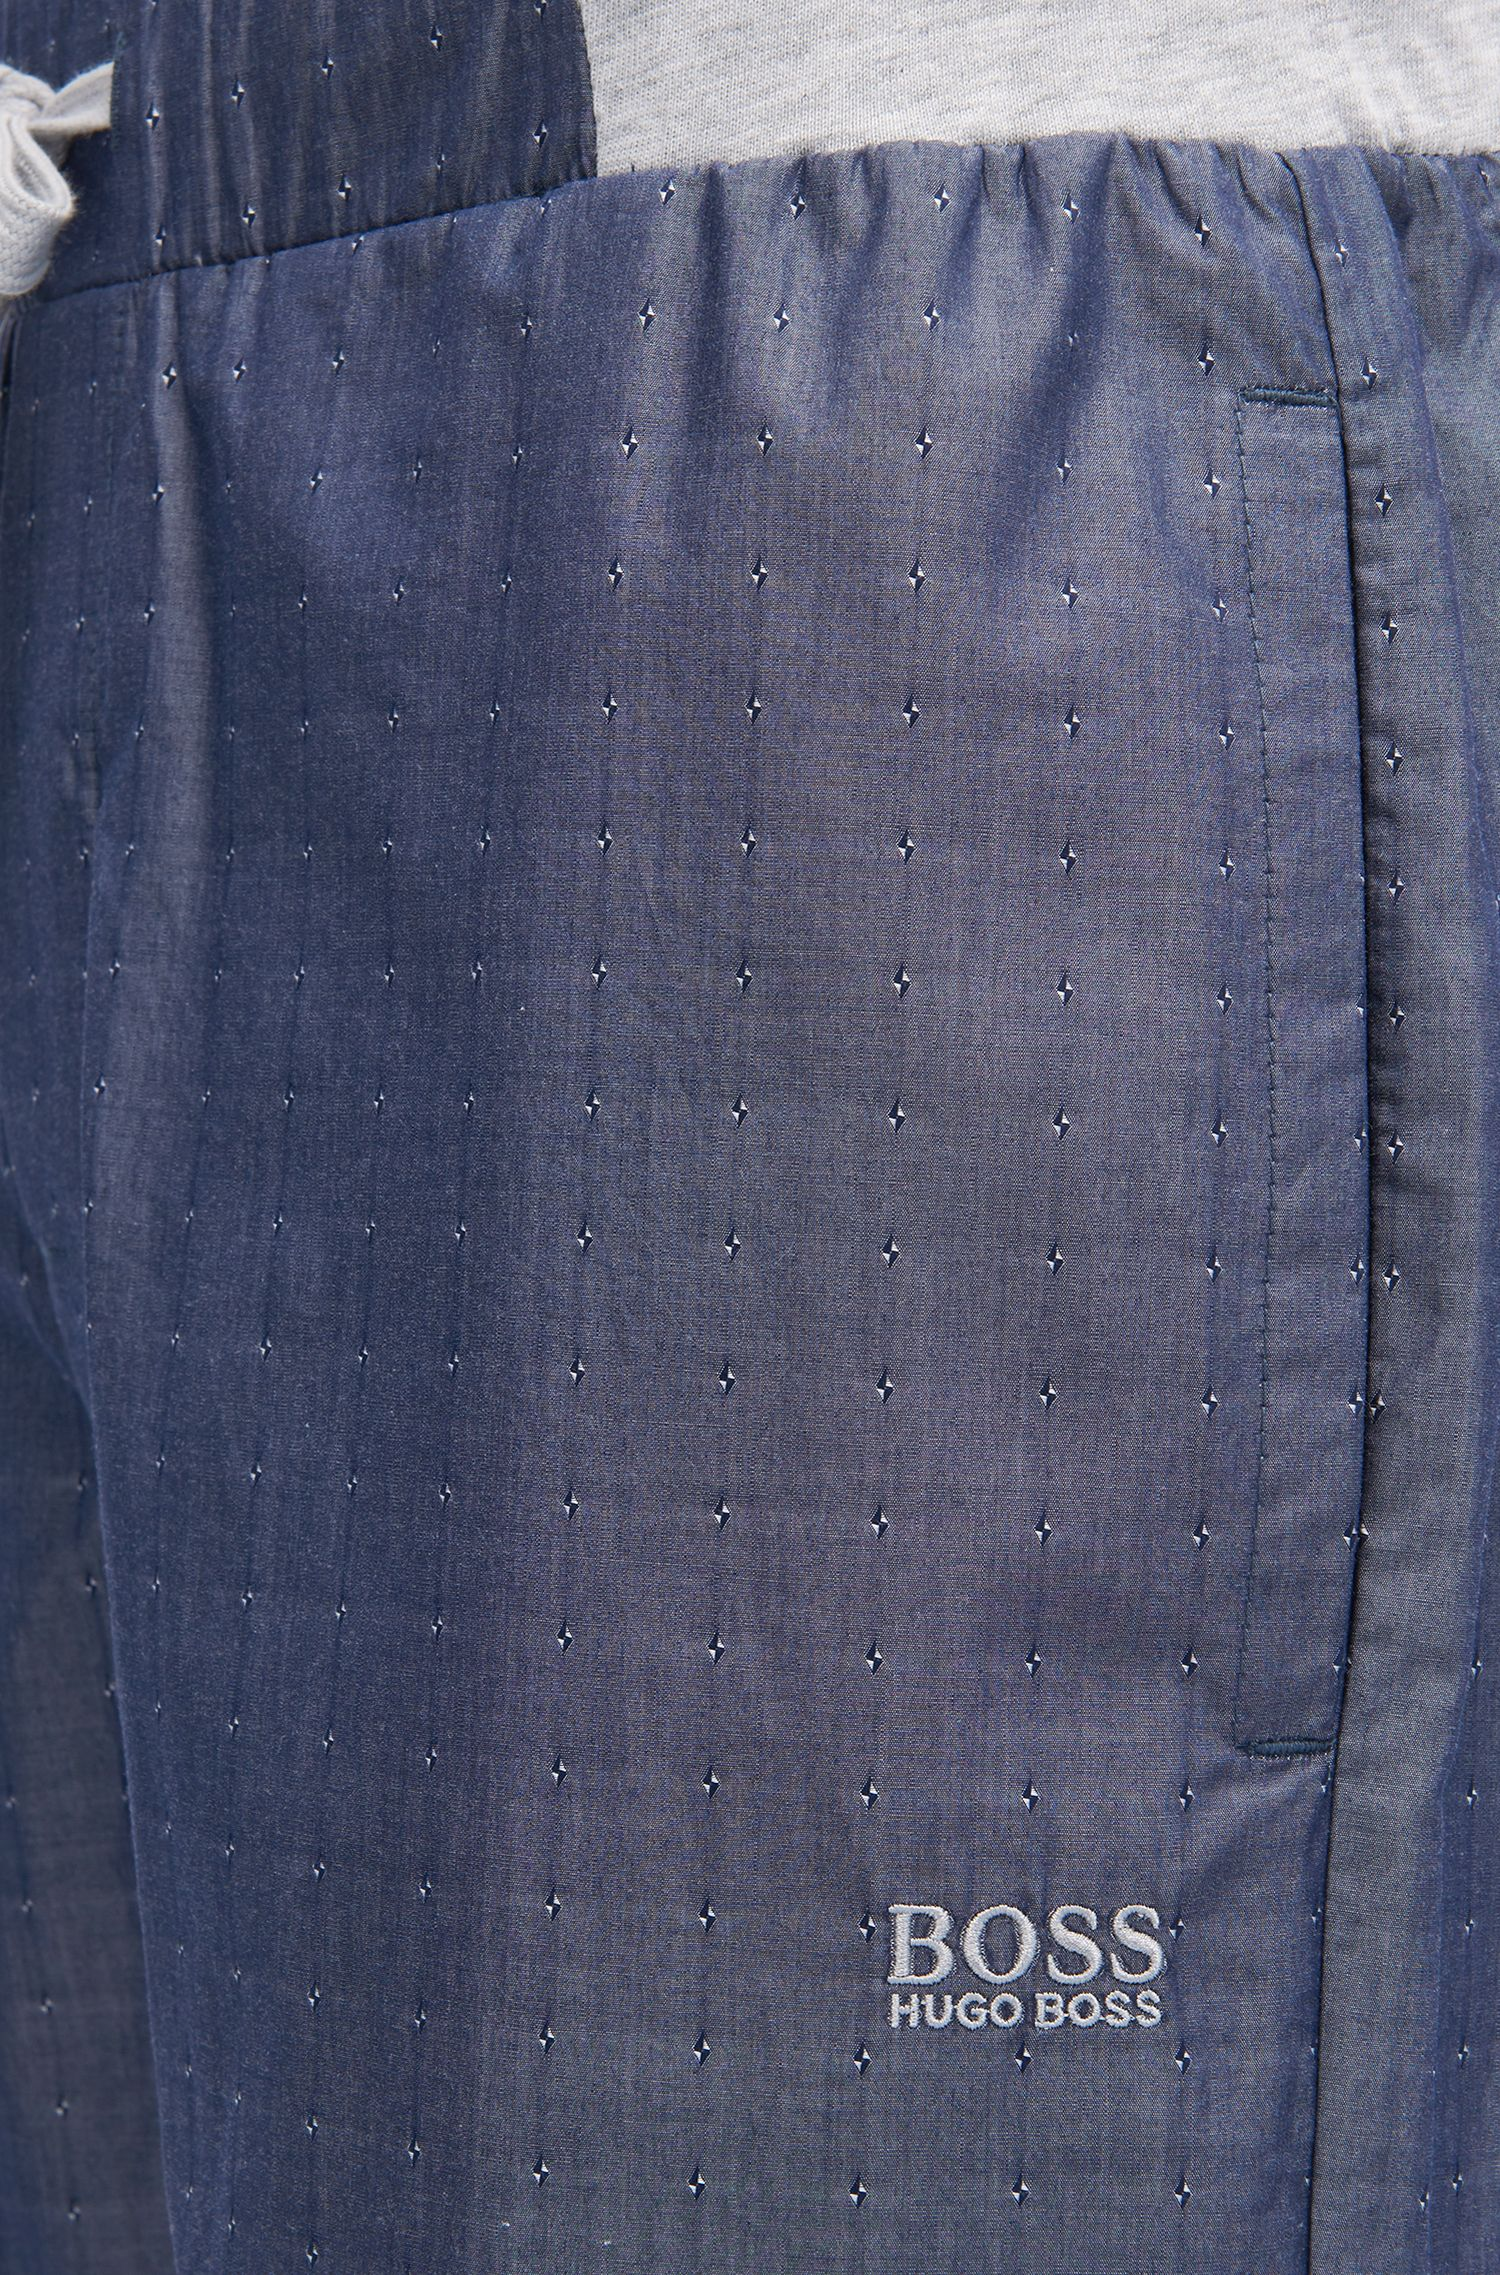 Cuffed-leg cotton pyjama trousers with fils coupé